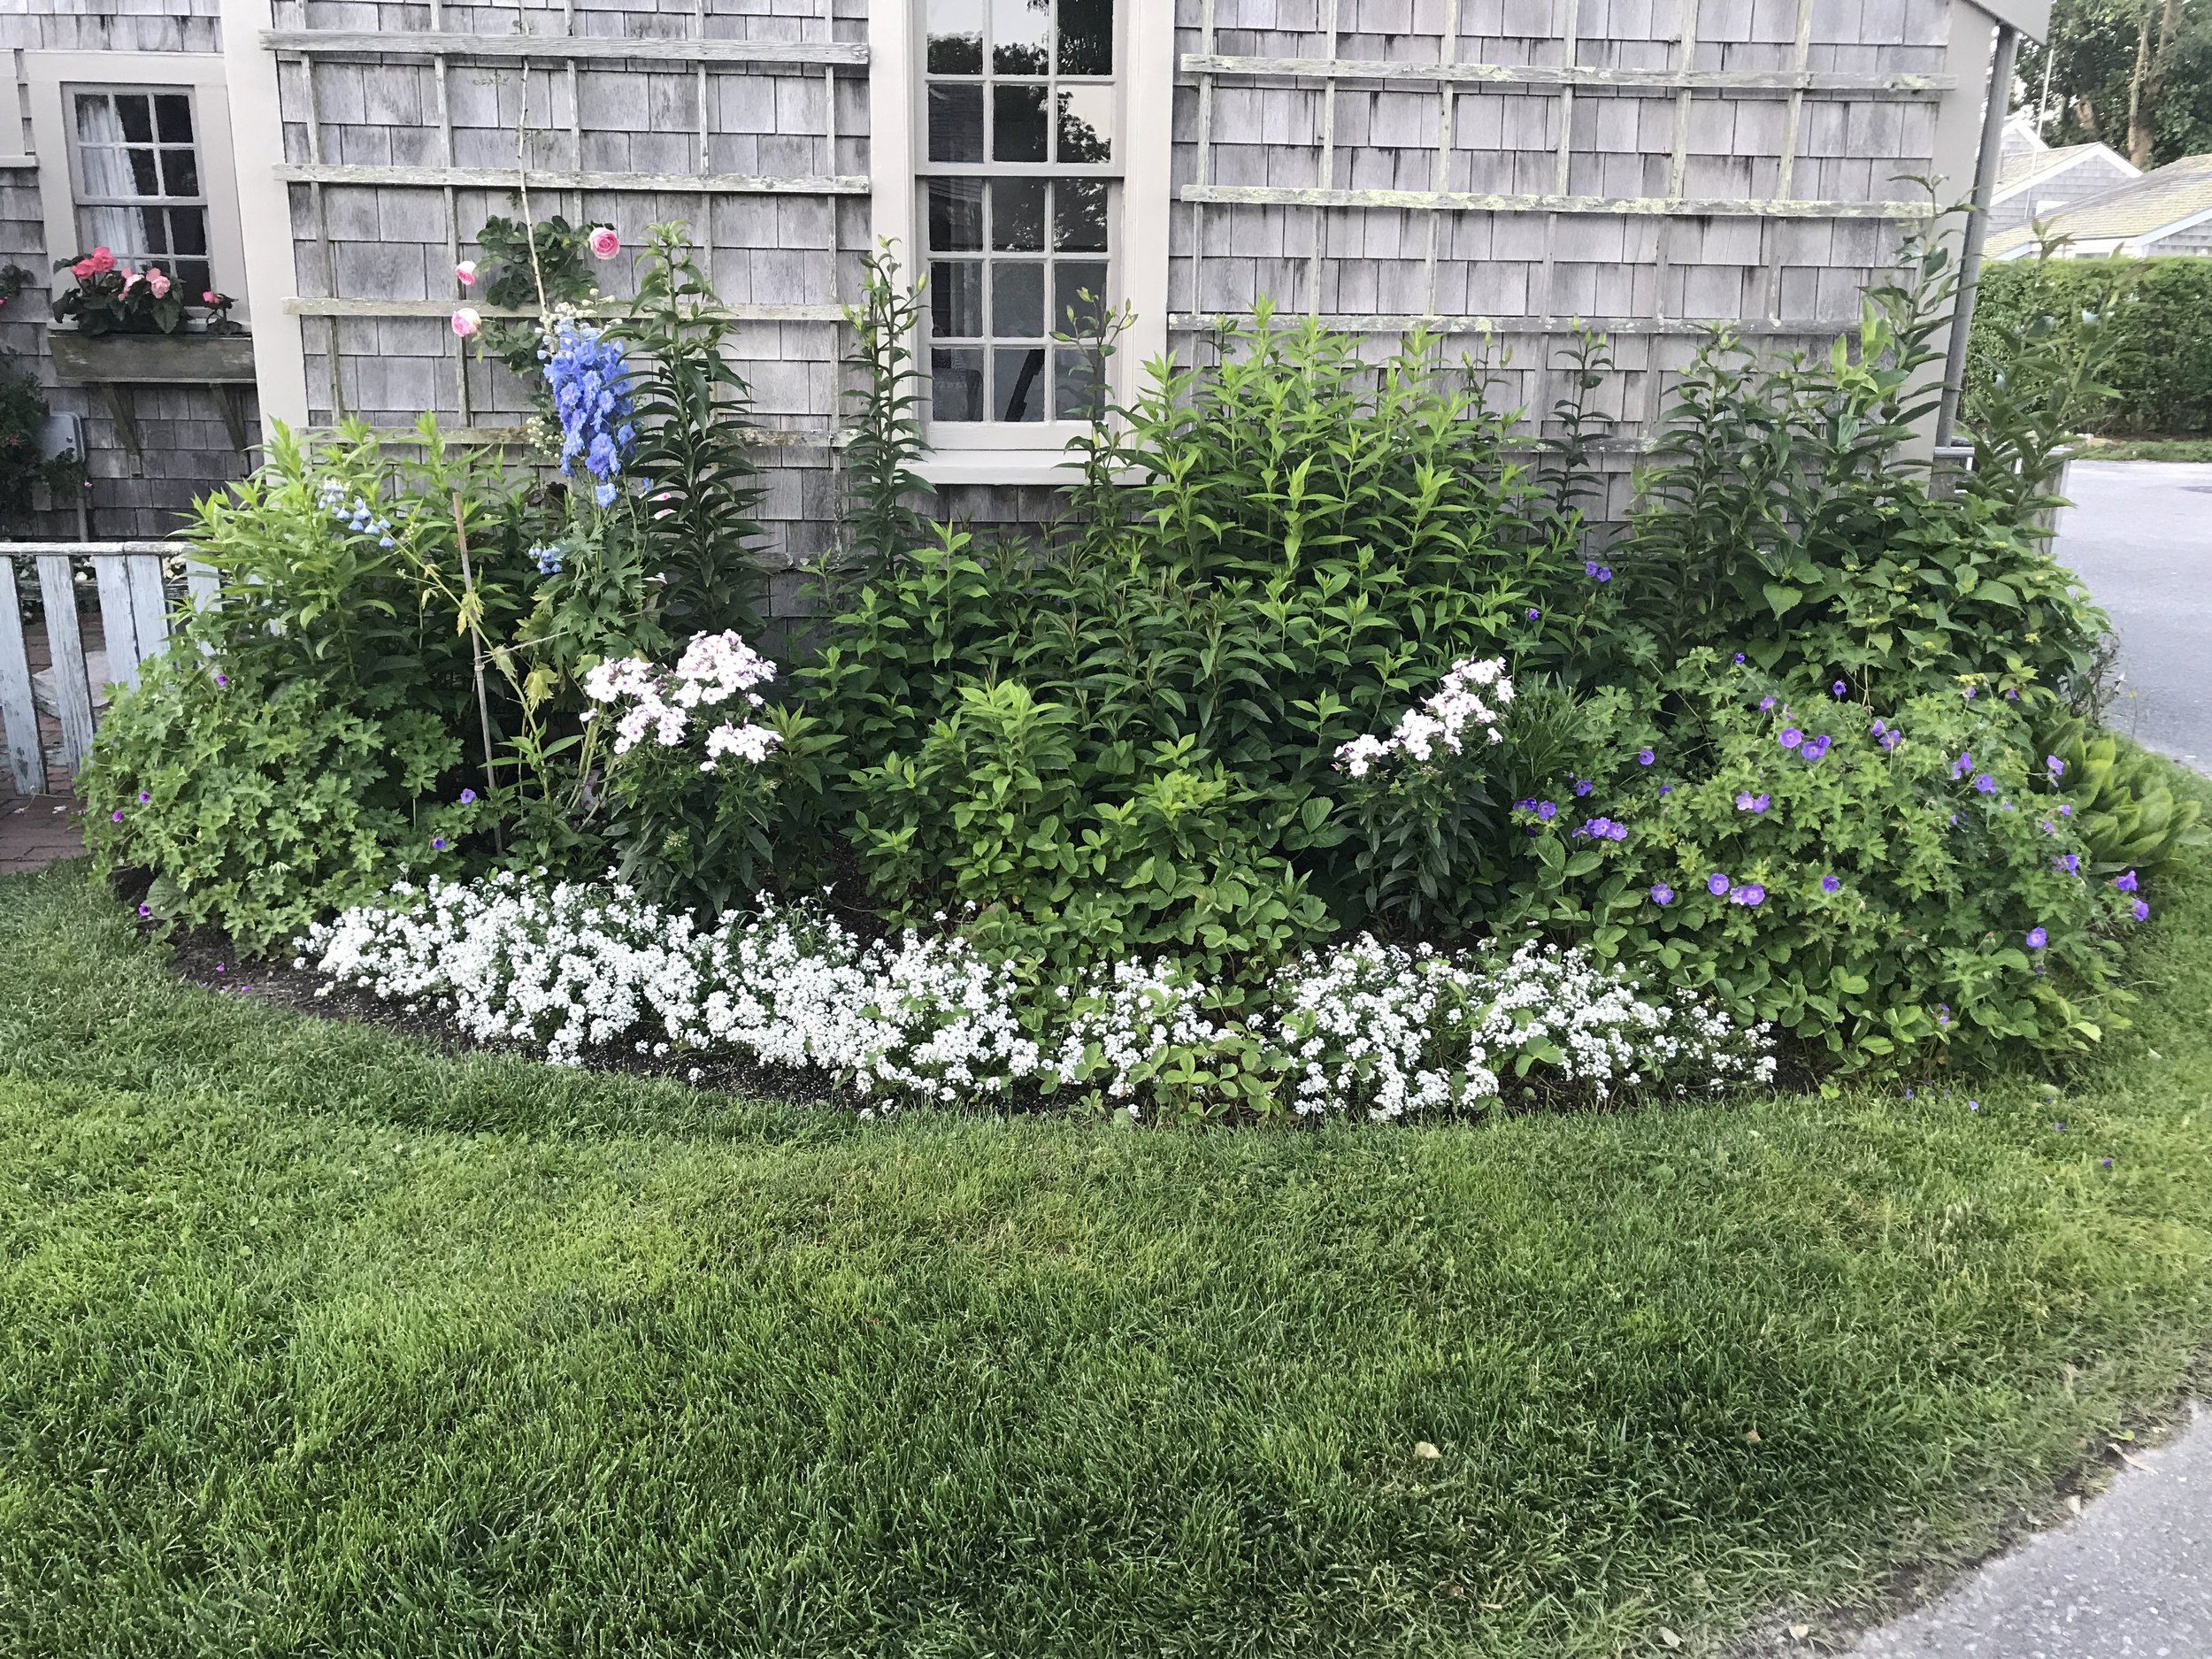 Historic Sconset Home. Early July 2018. As of the Tour date, this small garden has erupted in color and filled in completely. ©betsygibsondesign